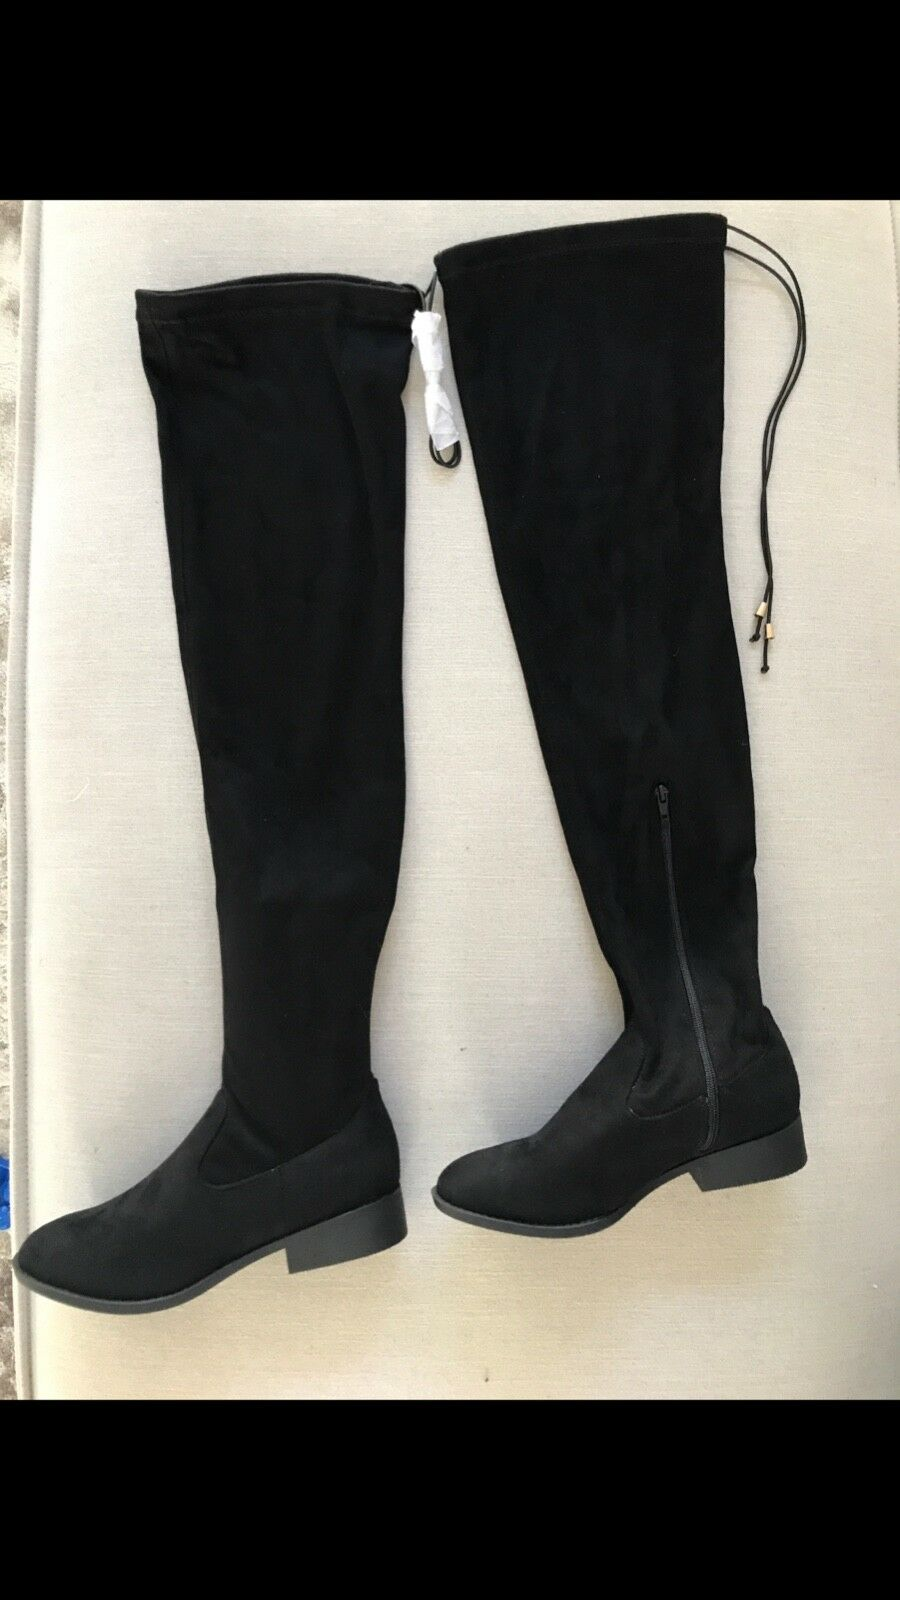 New thigh high black suede boots